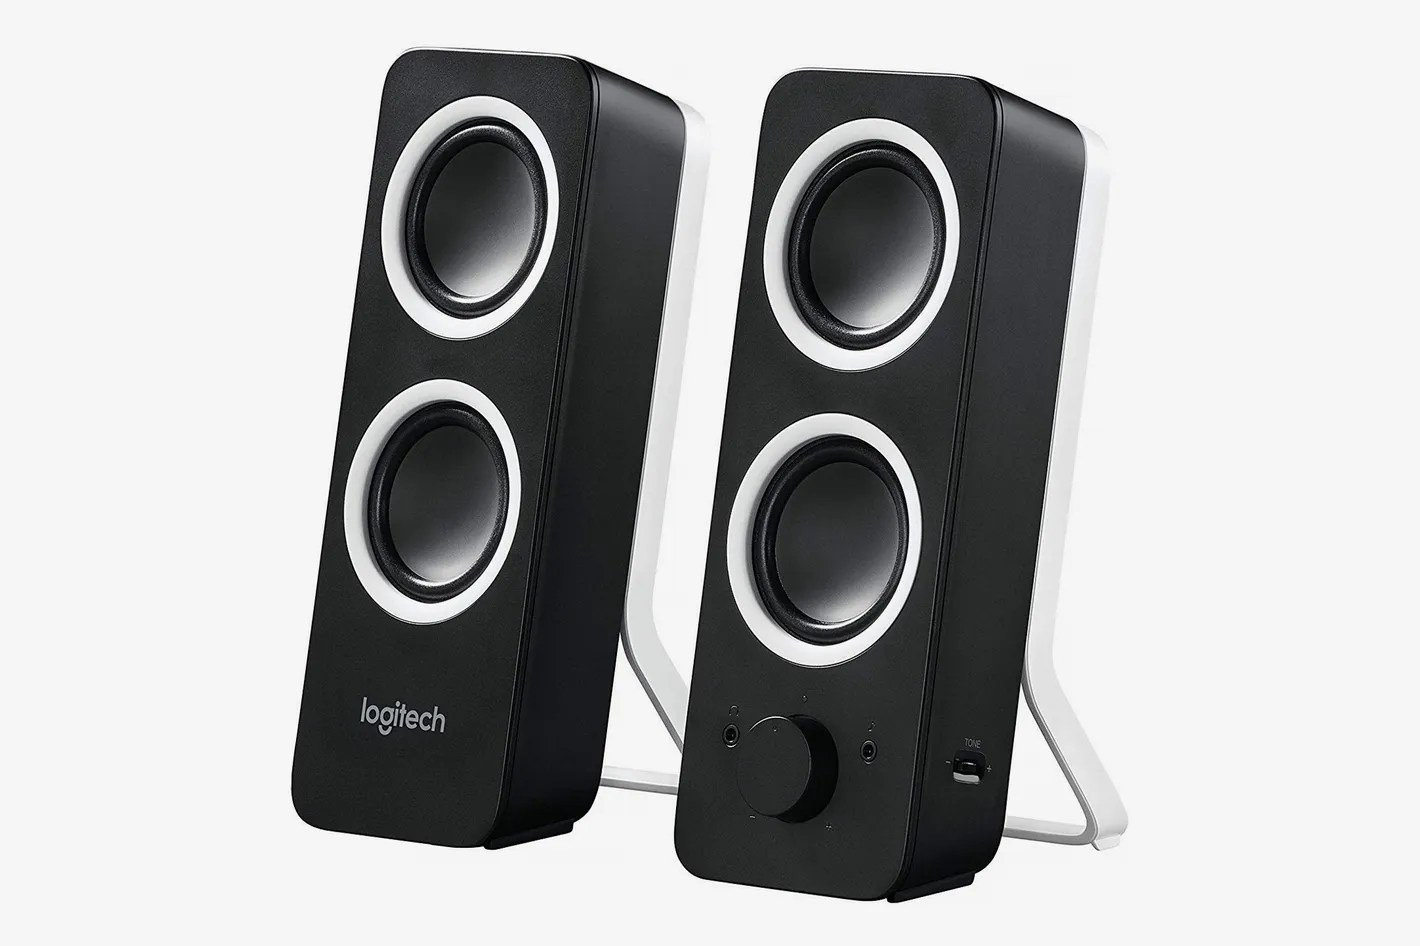 Cool Speakers For Bedroom Logitech Multimedia Speakers Z200 With Inputs For Multiple Devices